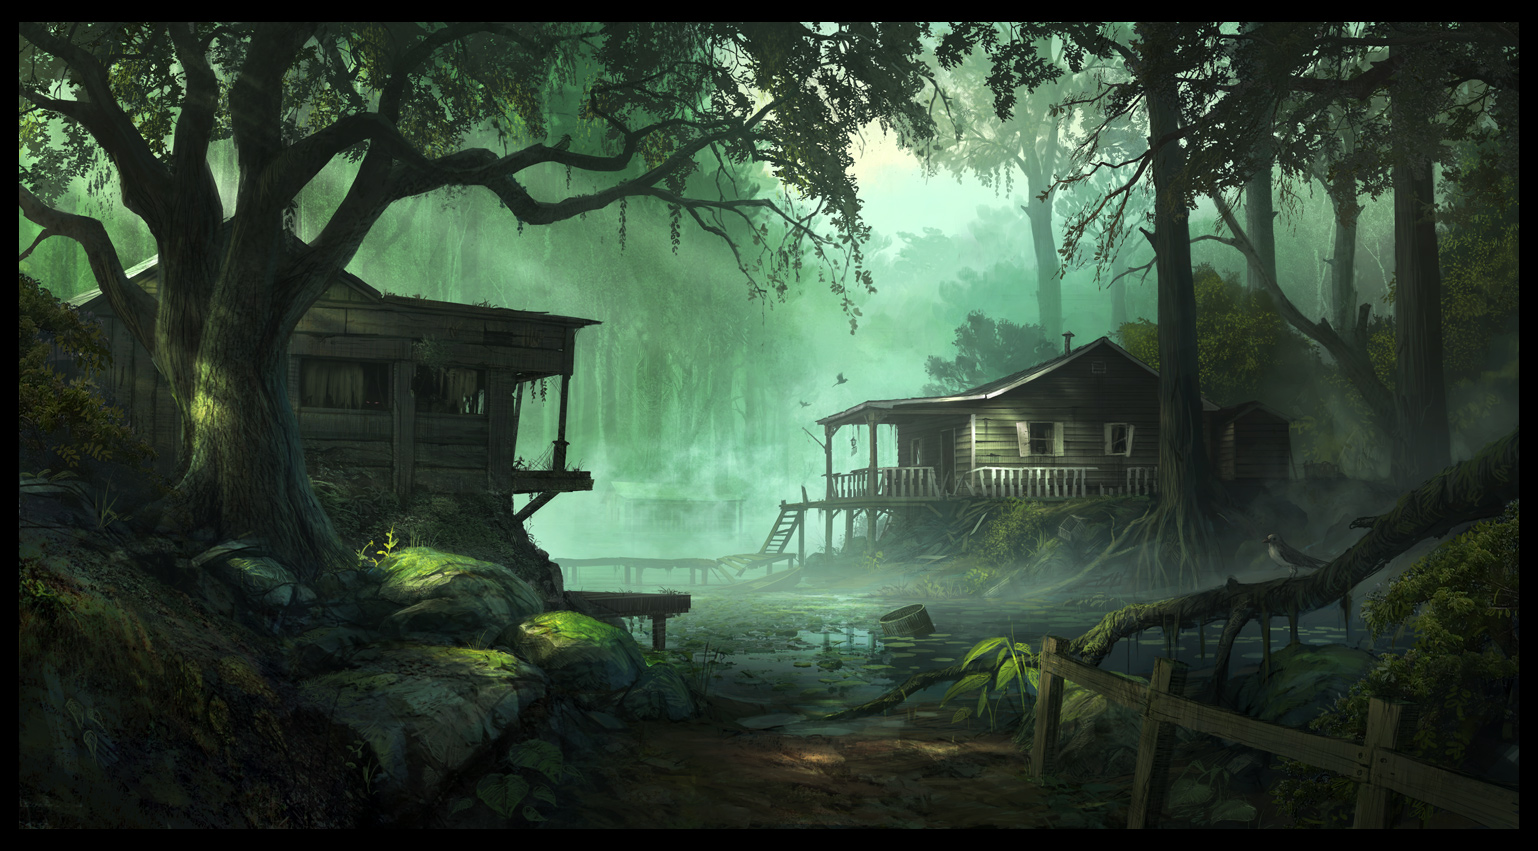 forest cabins Wallpaper Background 26470 1538x851